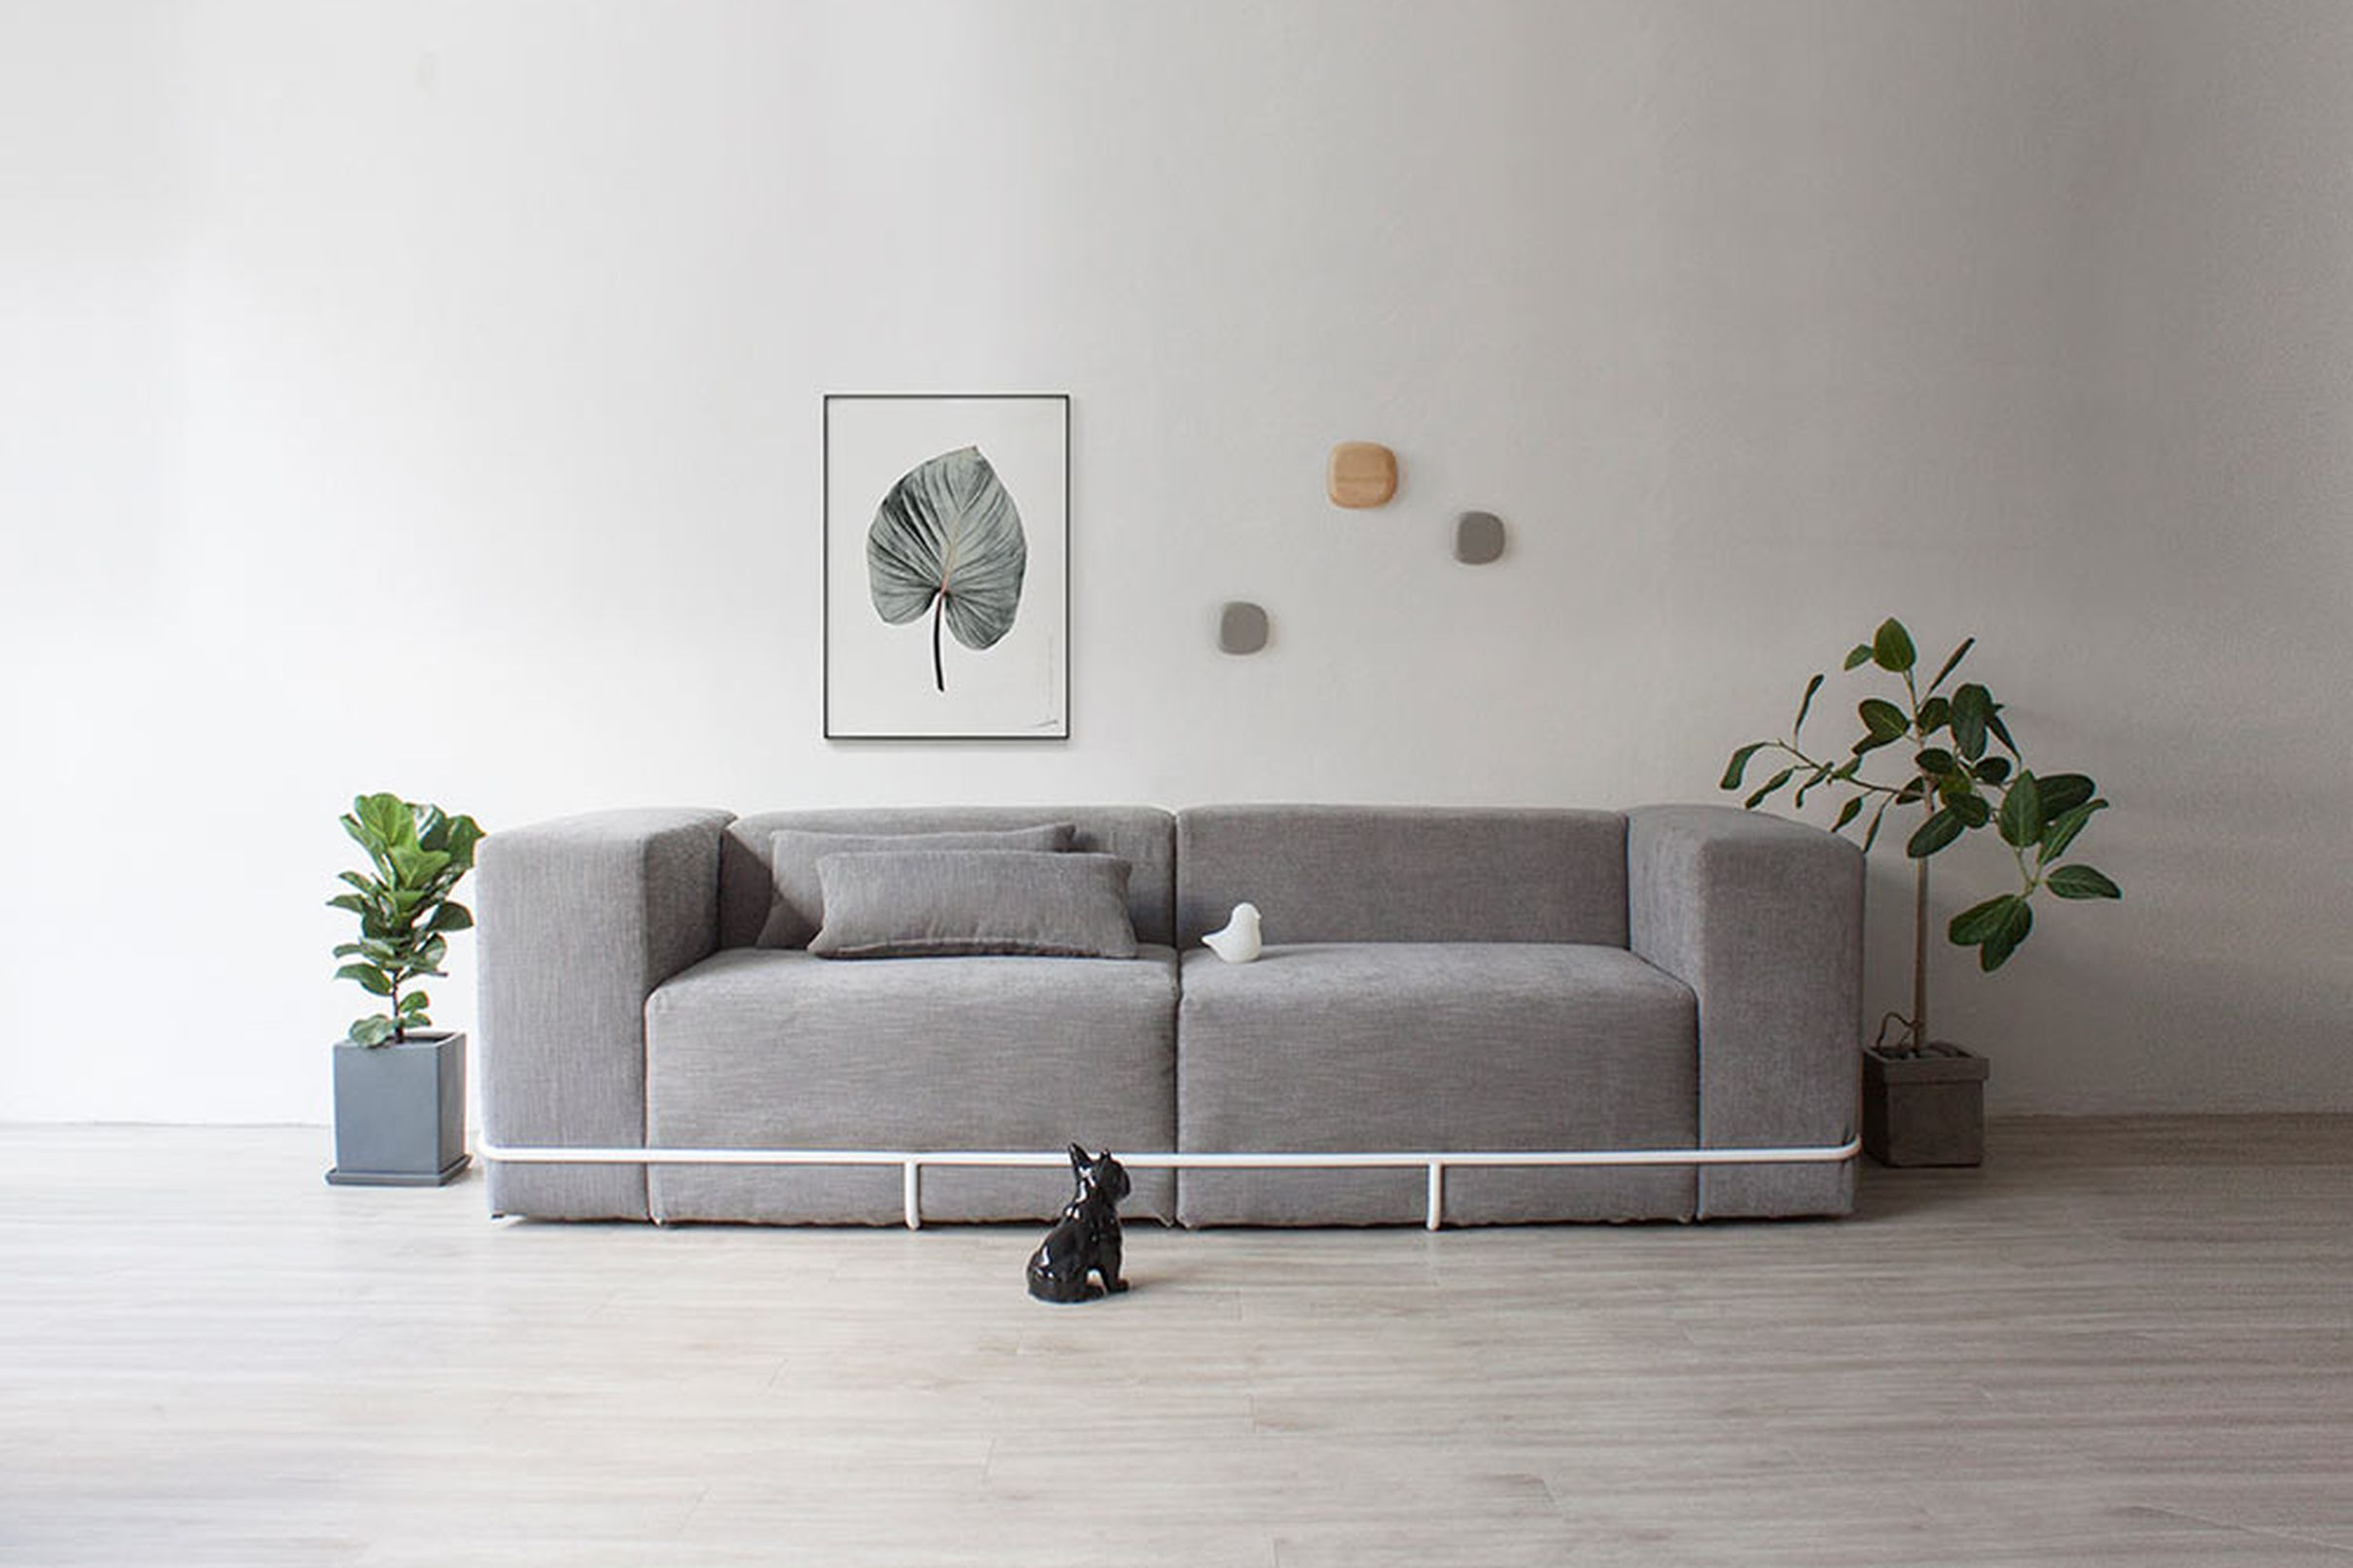 Minimalist Modular Sofa Combines Simple Steel Frame And Cushions Curbed